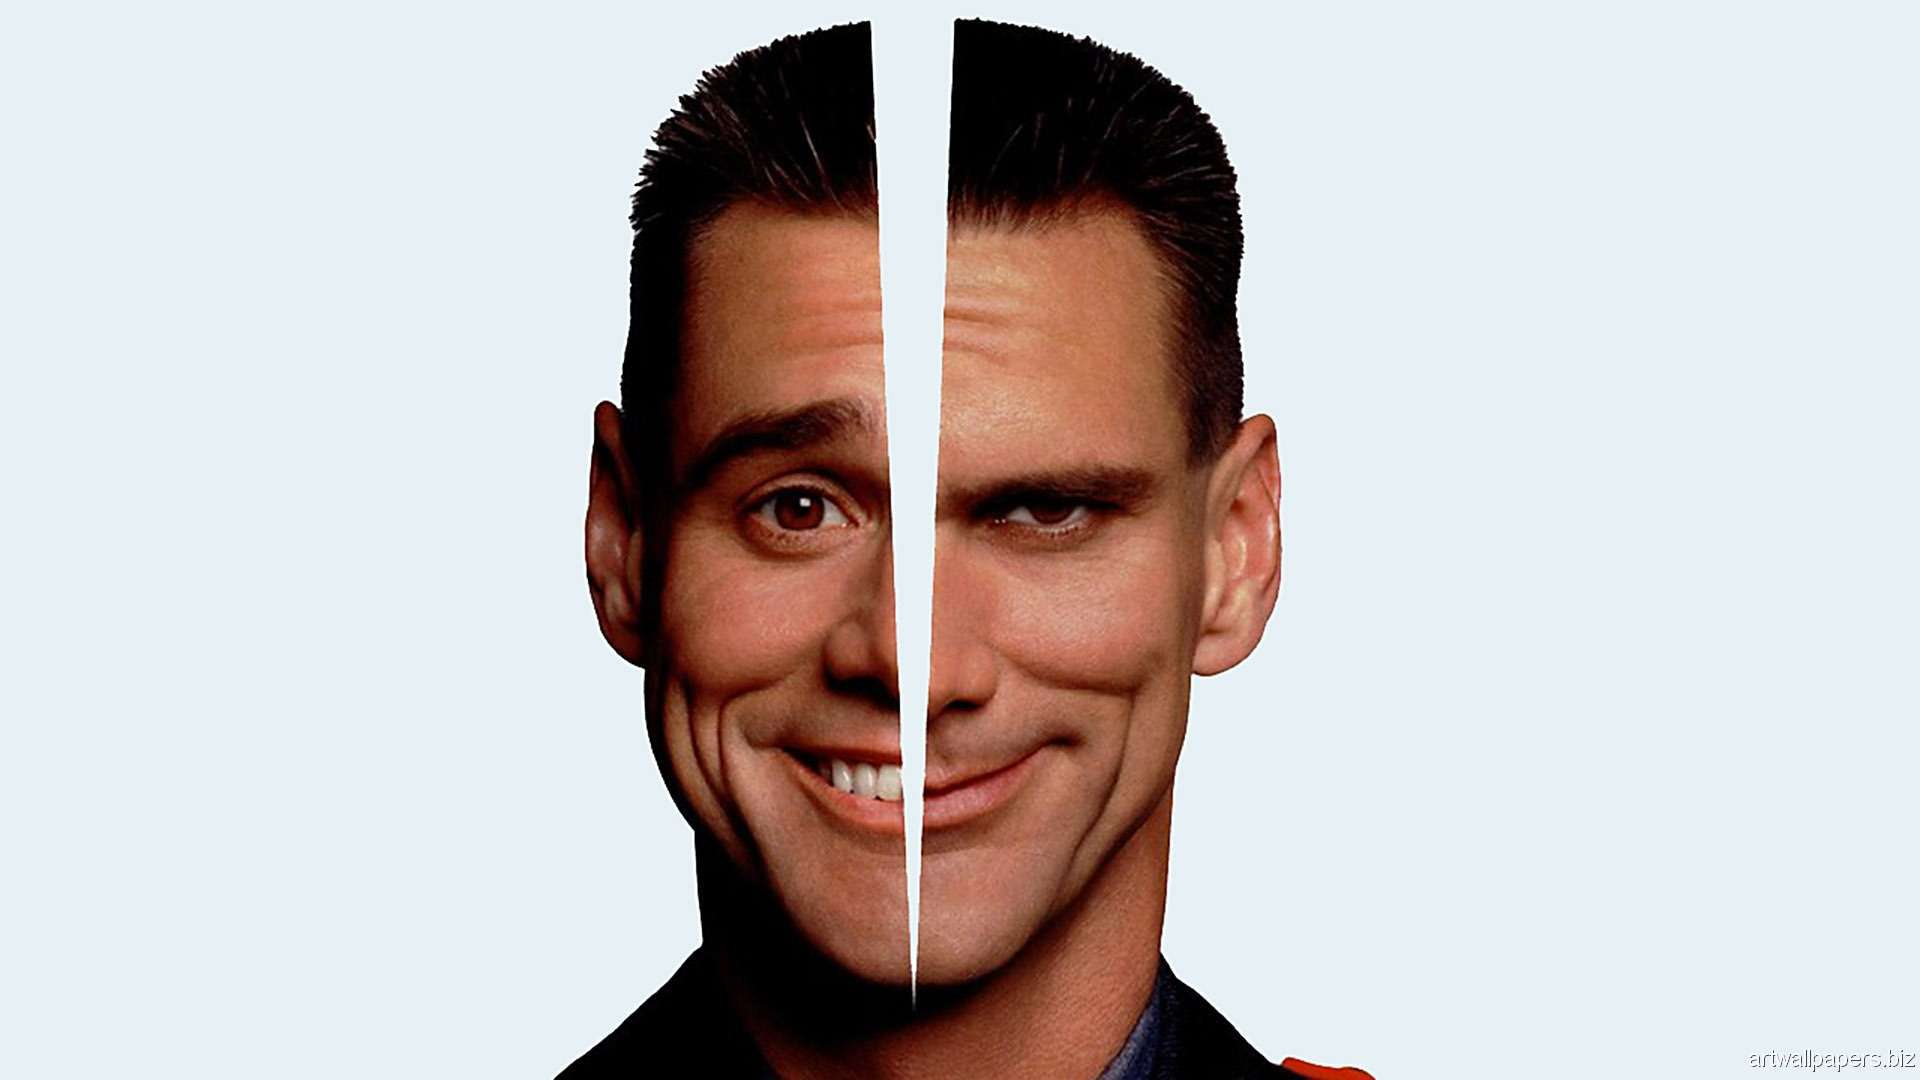 Jim Carrey Wallpapers High Resolution and Quality Download